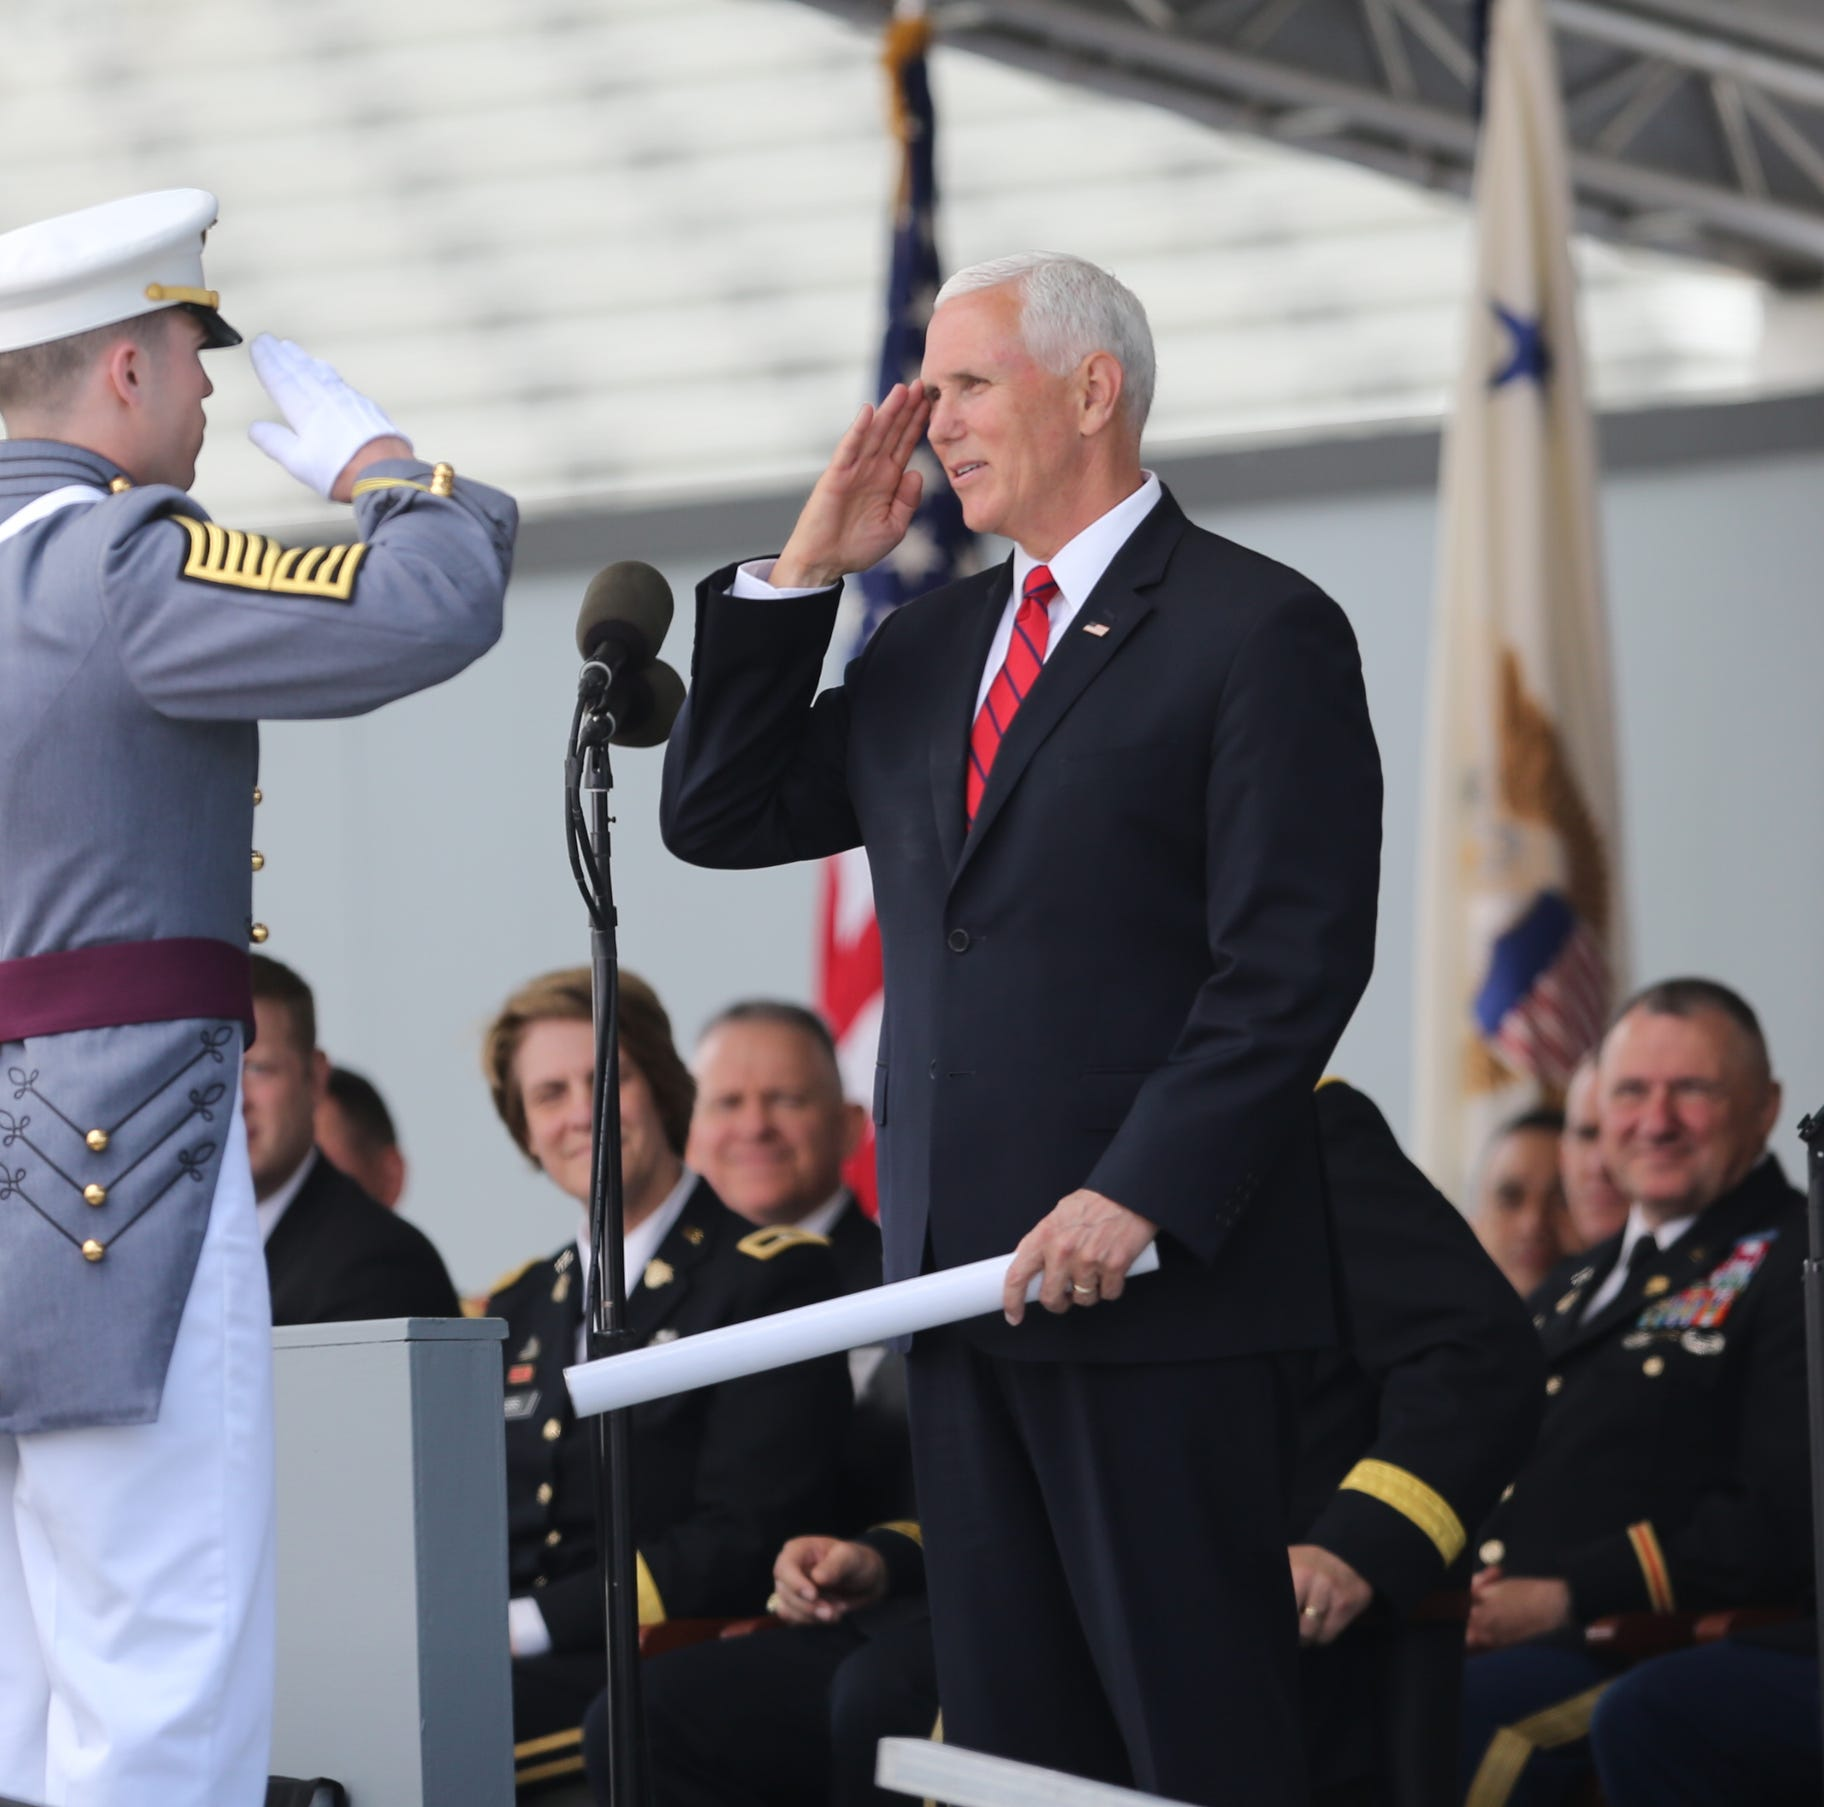 Vice President Mike Pence gives a salute to Cadet Brady Miller of Glen Rock in the 221st graduation and commissioning ceremony at the United States Military Academy at West Point on Saturday, May 25, 2019.  Cadets graduate and are commissioned as Army 2nd lieutenants.